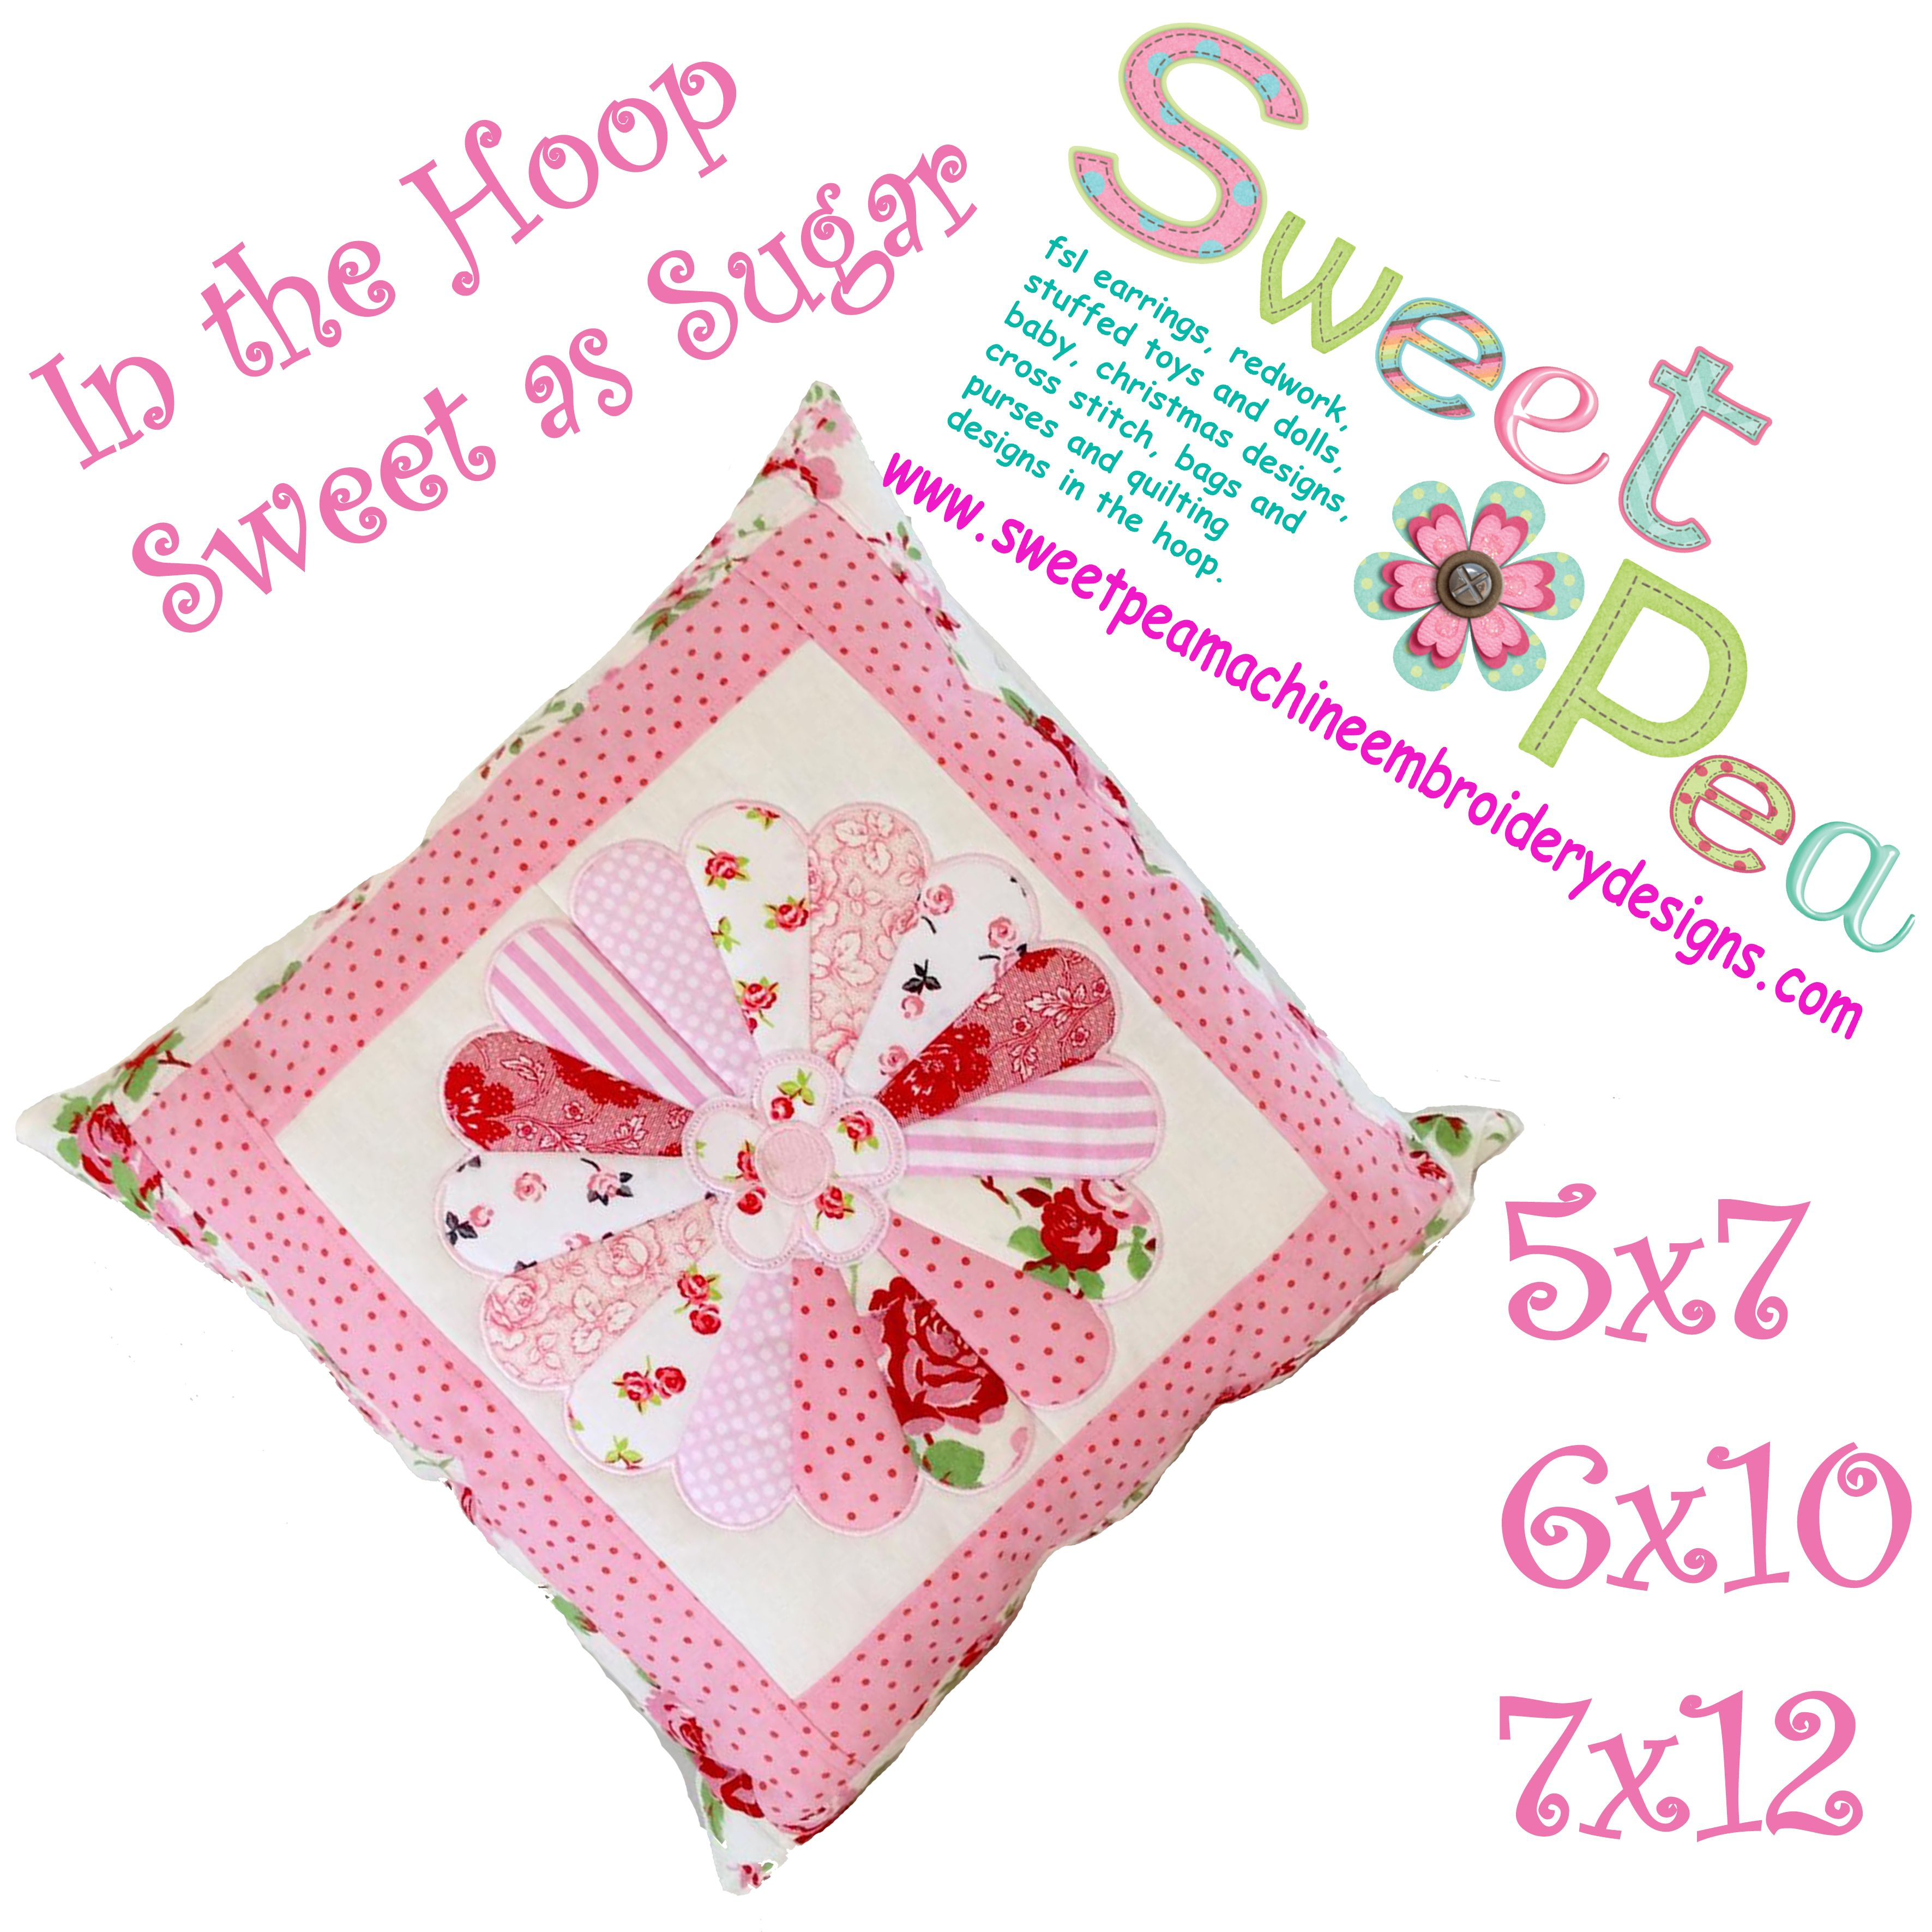 sweet pea embroidery # 37